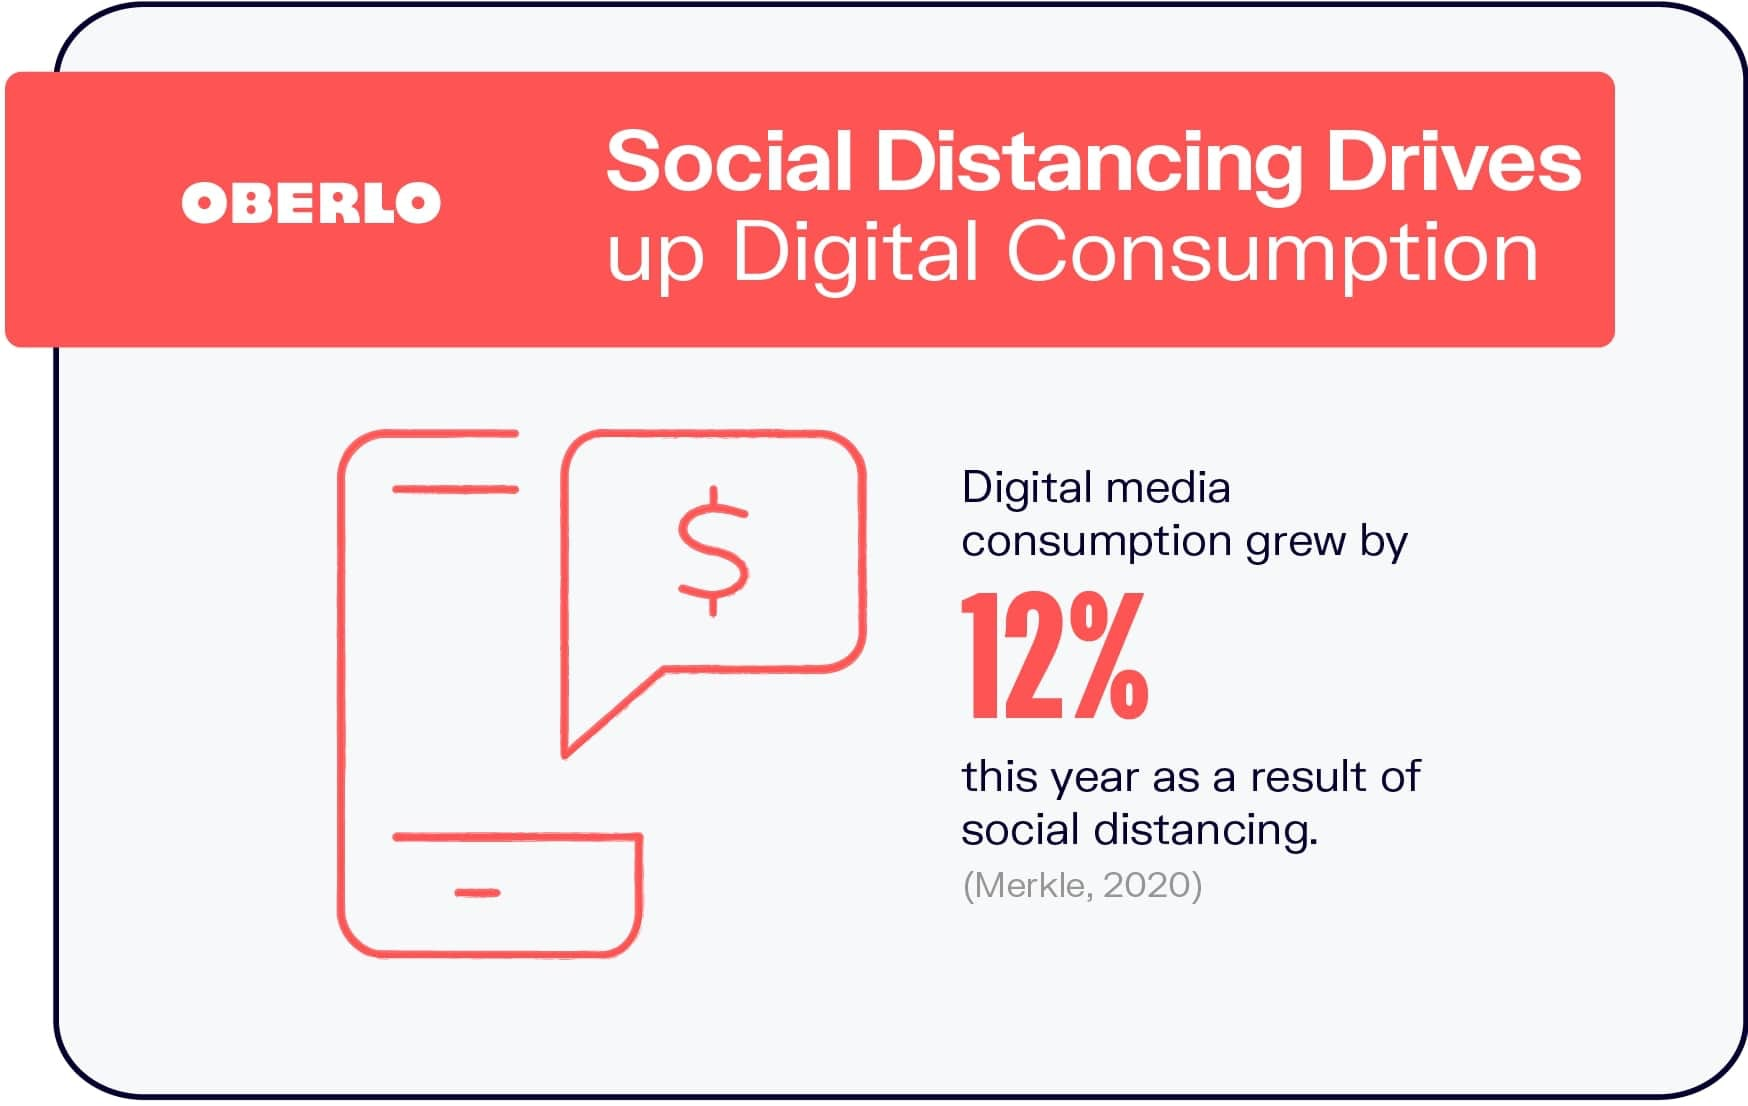 Social Distancing Drives up Digital Consumption